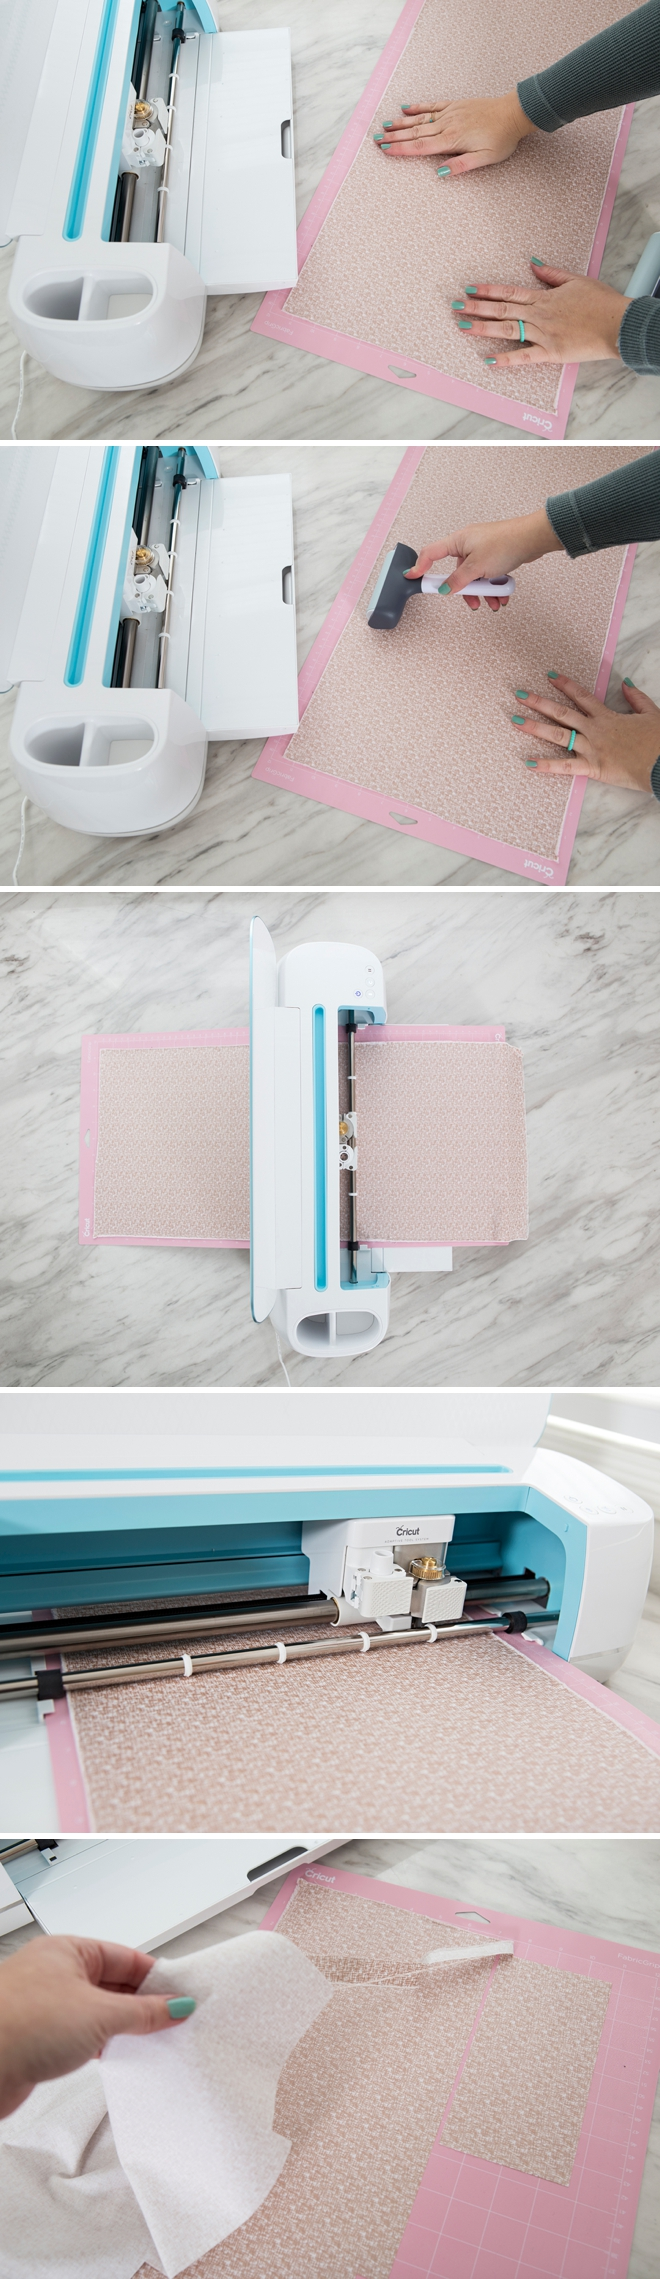 The Cricut Maker cutting quilt fabric!